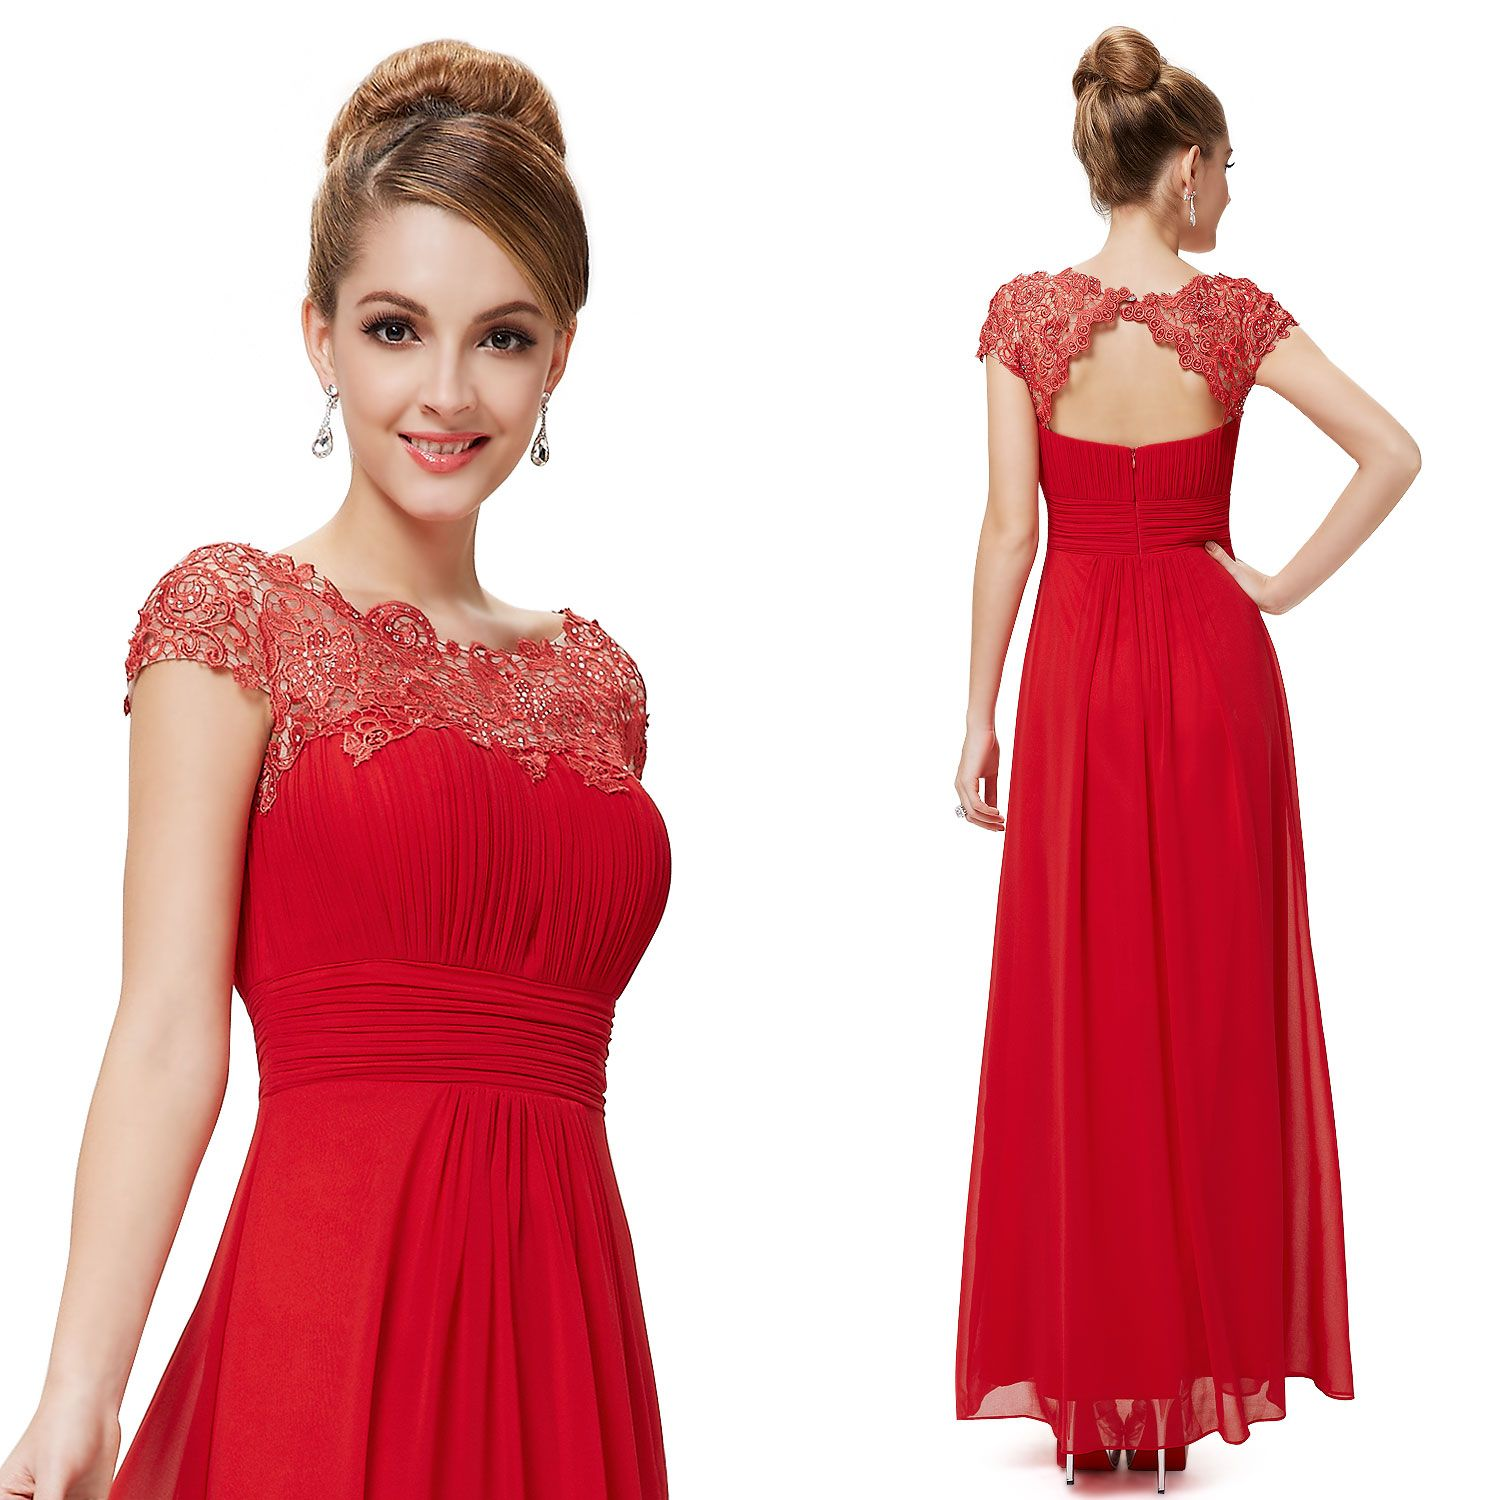 Dress style red dresseseveningpromformal gowncocktail